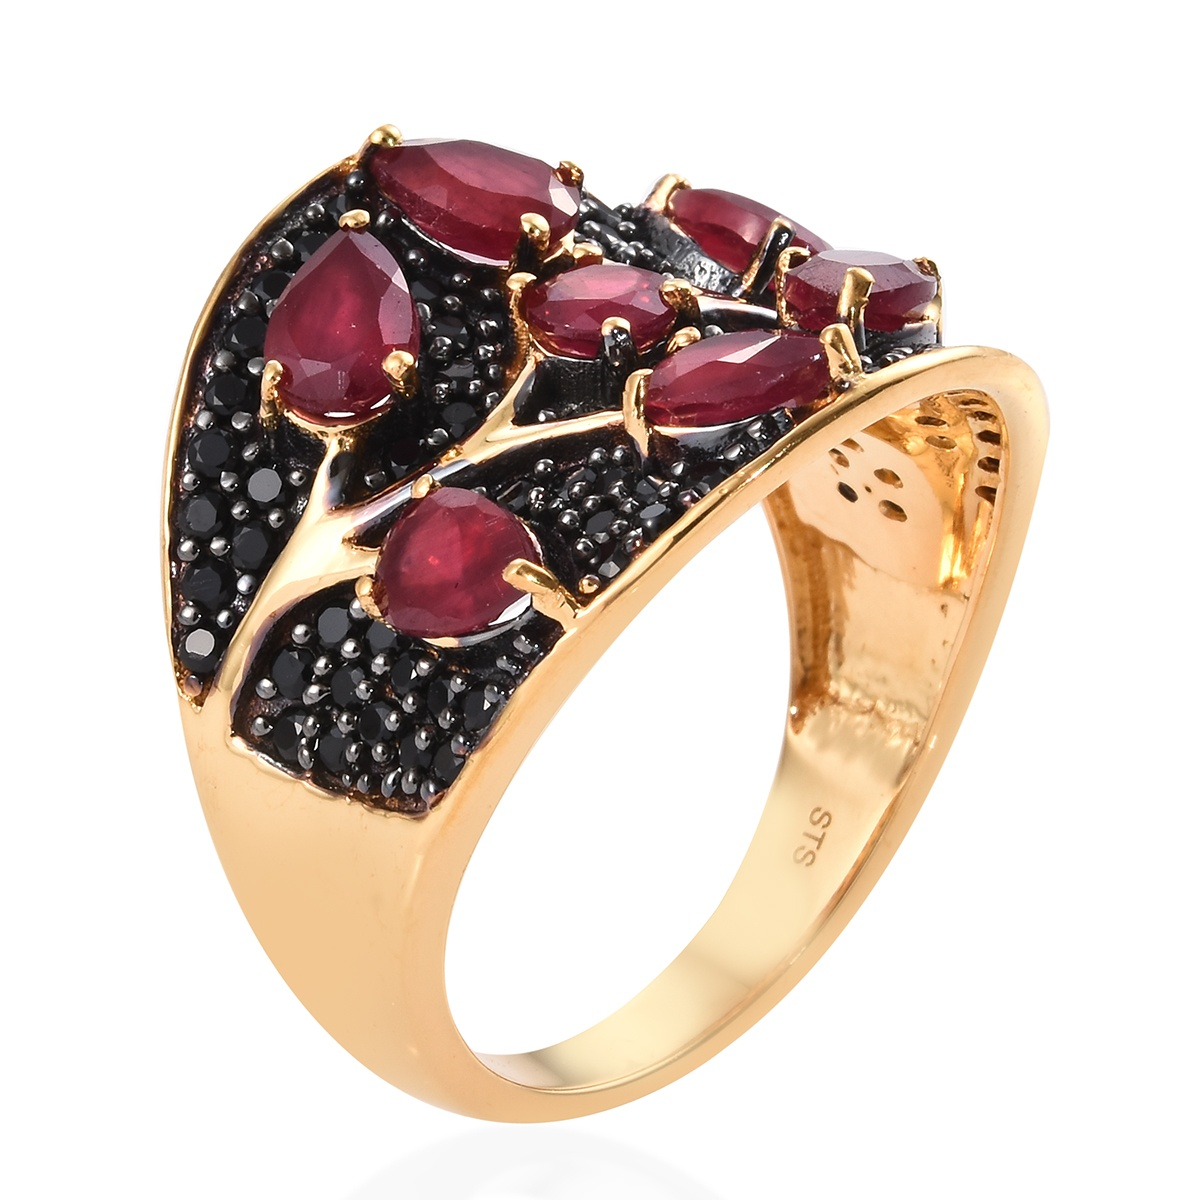 Niassa Ruby, Thai Black Spinel Ring in Rhodium & Vermeil YG Over Sterling Silver (Size 10.0) 5.55 ctw